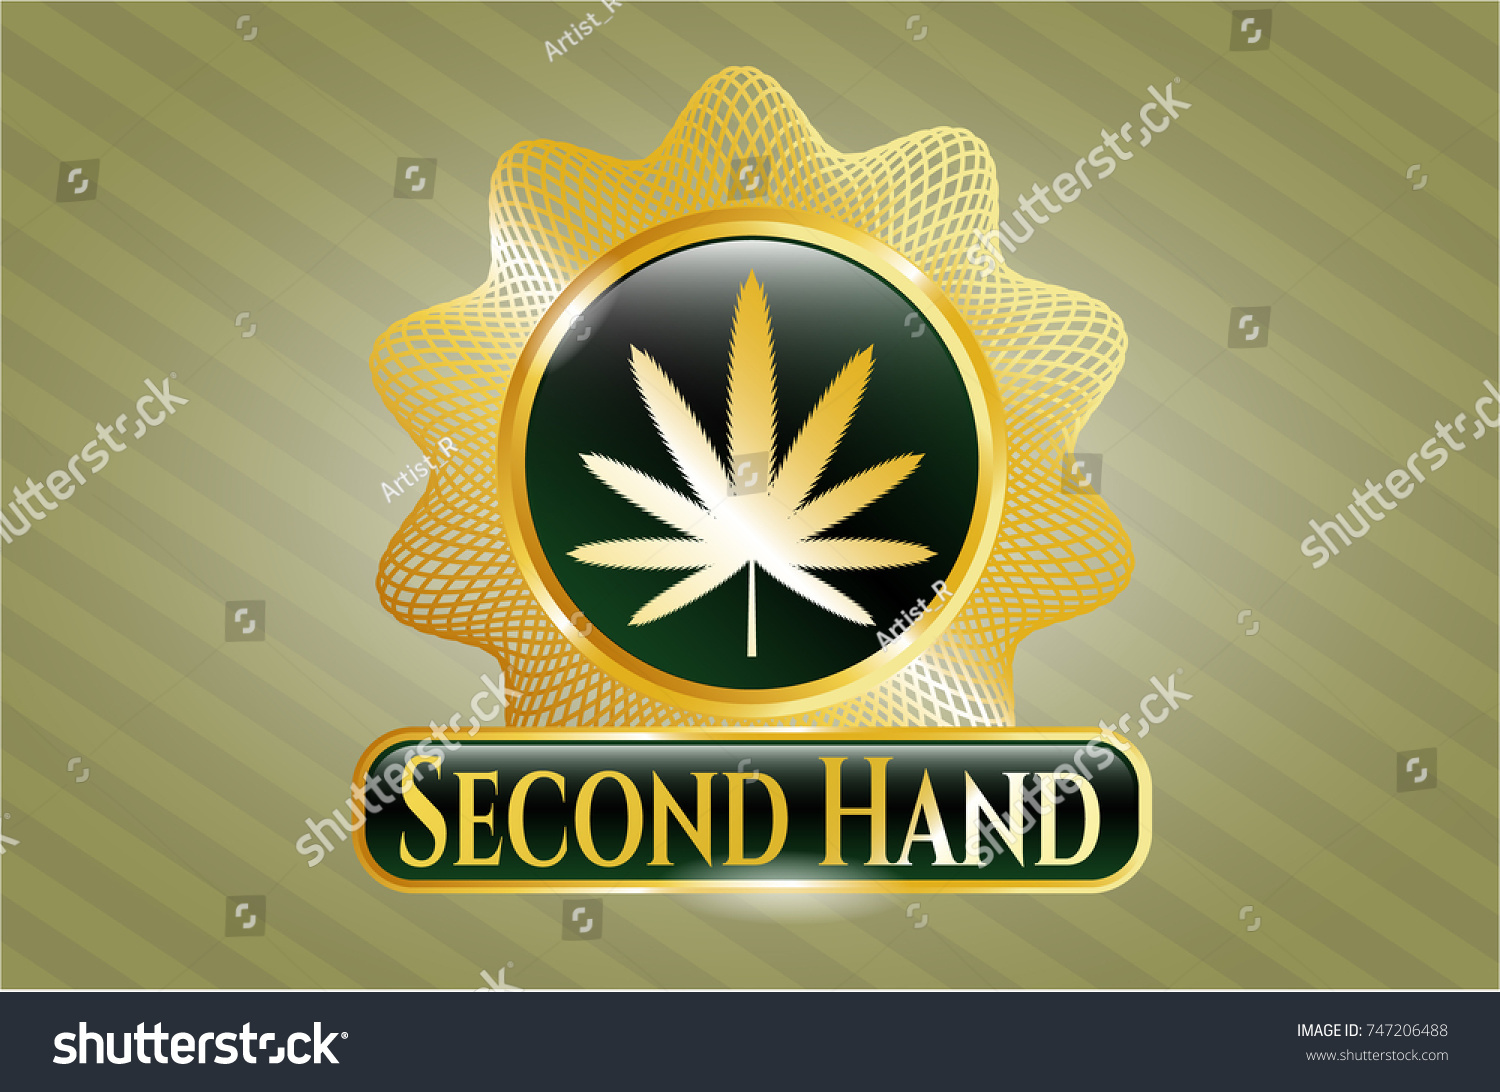 Gold emblem weed leaf icon second stock vector 747206488 shutterstock gold emblem with weed leaf icon and second hand text inside biocorpaavc Choice Image